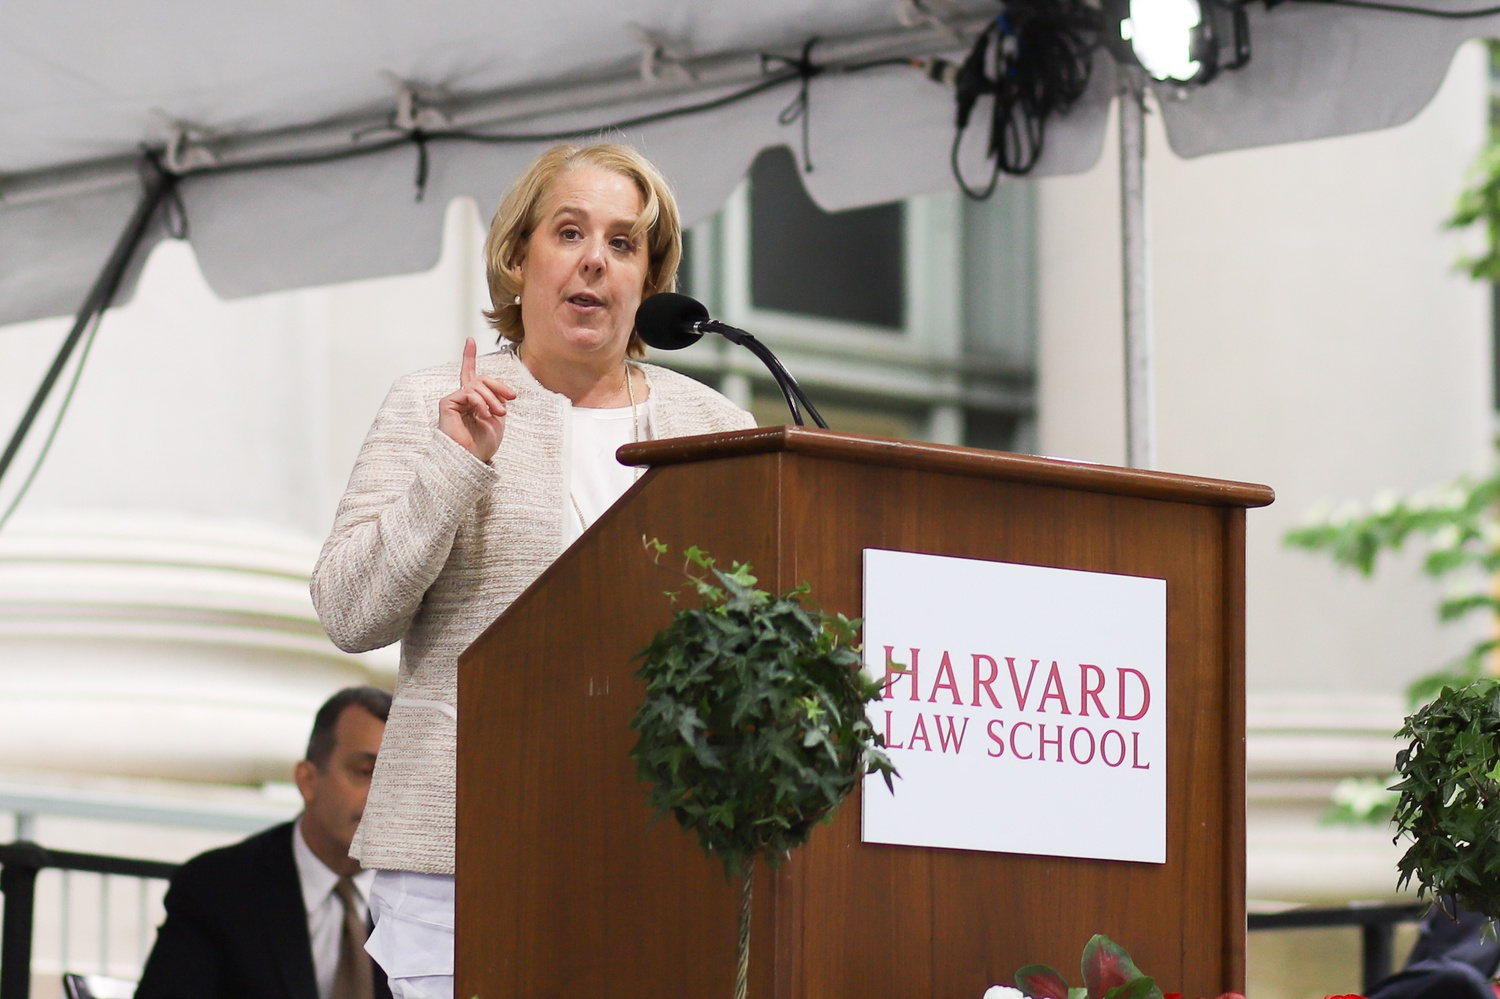 American lawyer Roberta A. Kaplan '88 spoke at Harvard Law School's Class Day event Wednesday. Kaplan led the push to convince the Supreme Court that the Defense of Marriage Act, which did not recognize same-sex marriage, was unconstitutional.